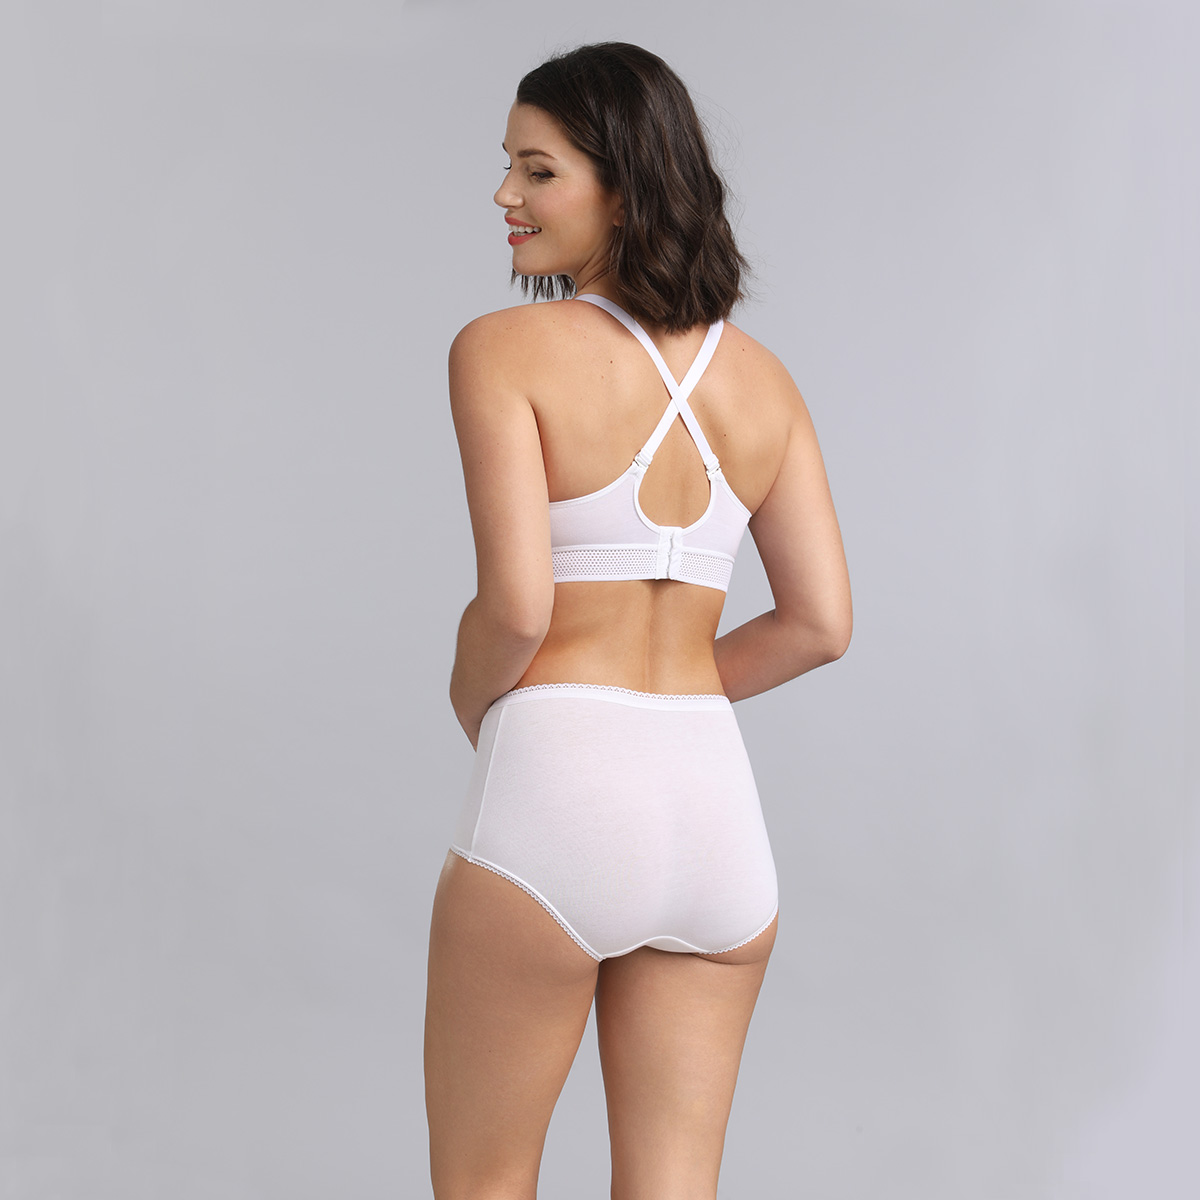 Soutien-gorge blanc sans armatures Feel Good Support, , PLAYTEX